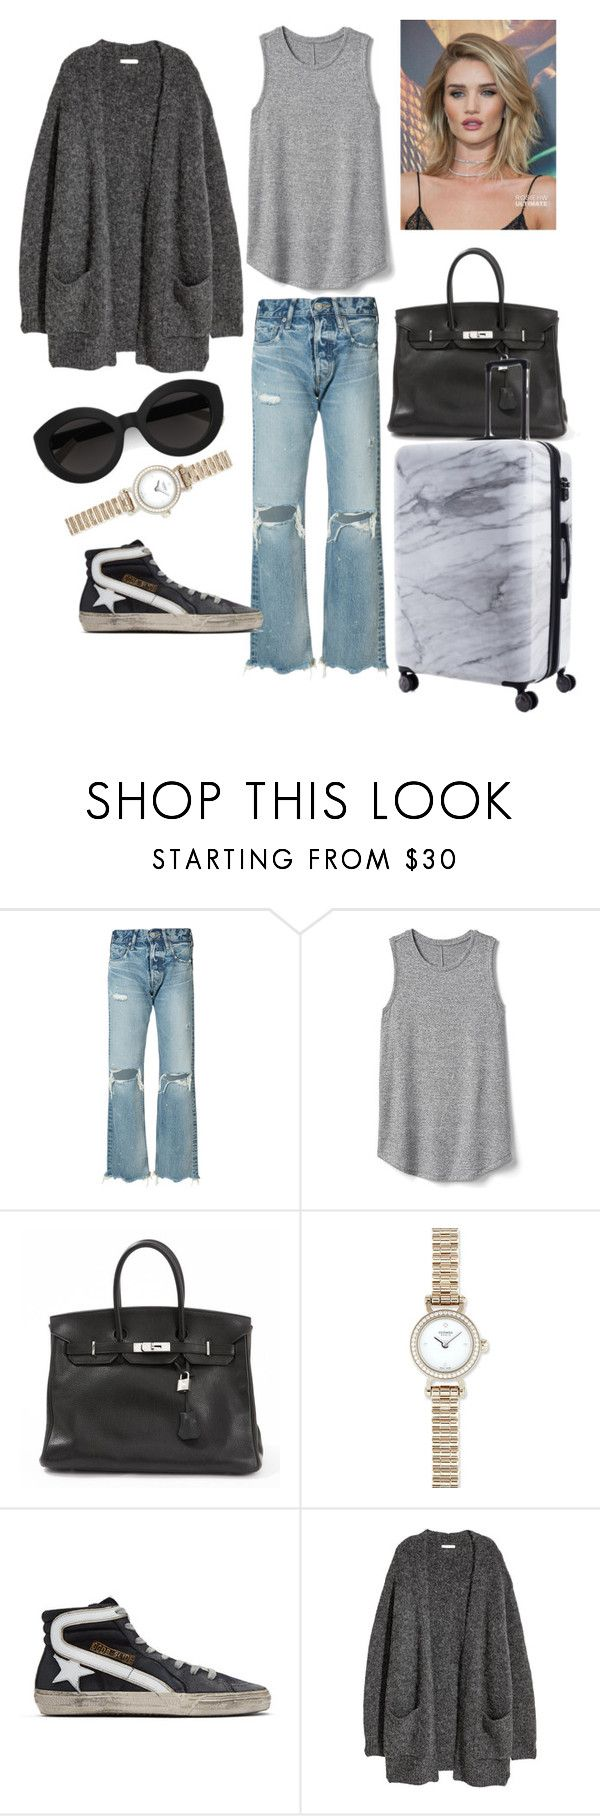 """""""AIRPORT 1"""" by ghalouy on Polyvore featuring moussy, Gap, Hermès, Golden Goose, CalPak, Whiteley and Carla Zampatti"""